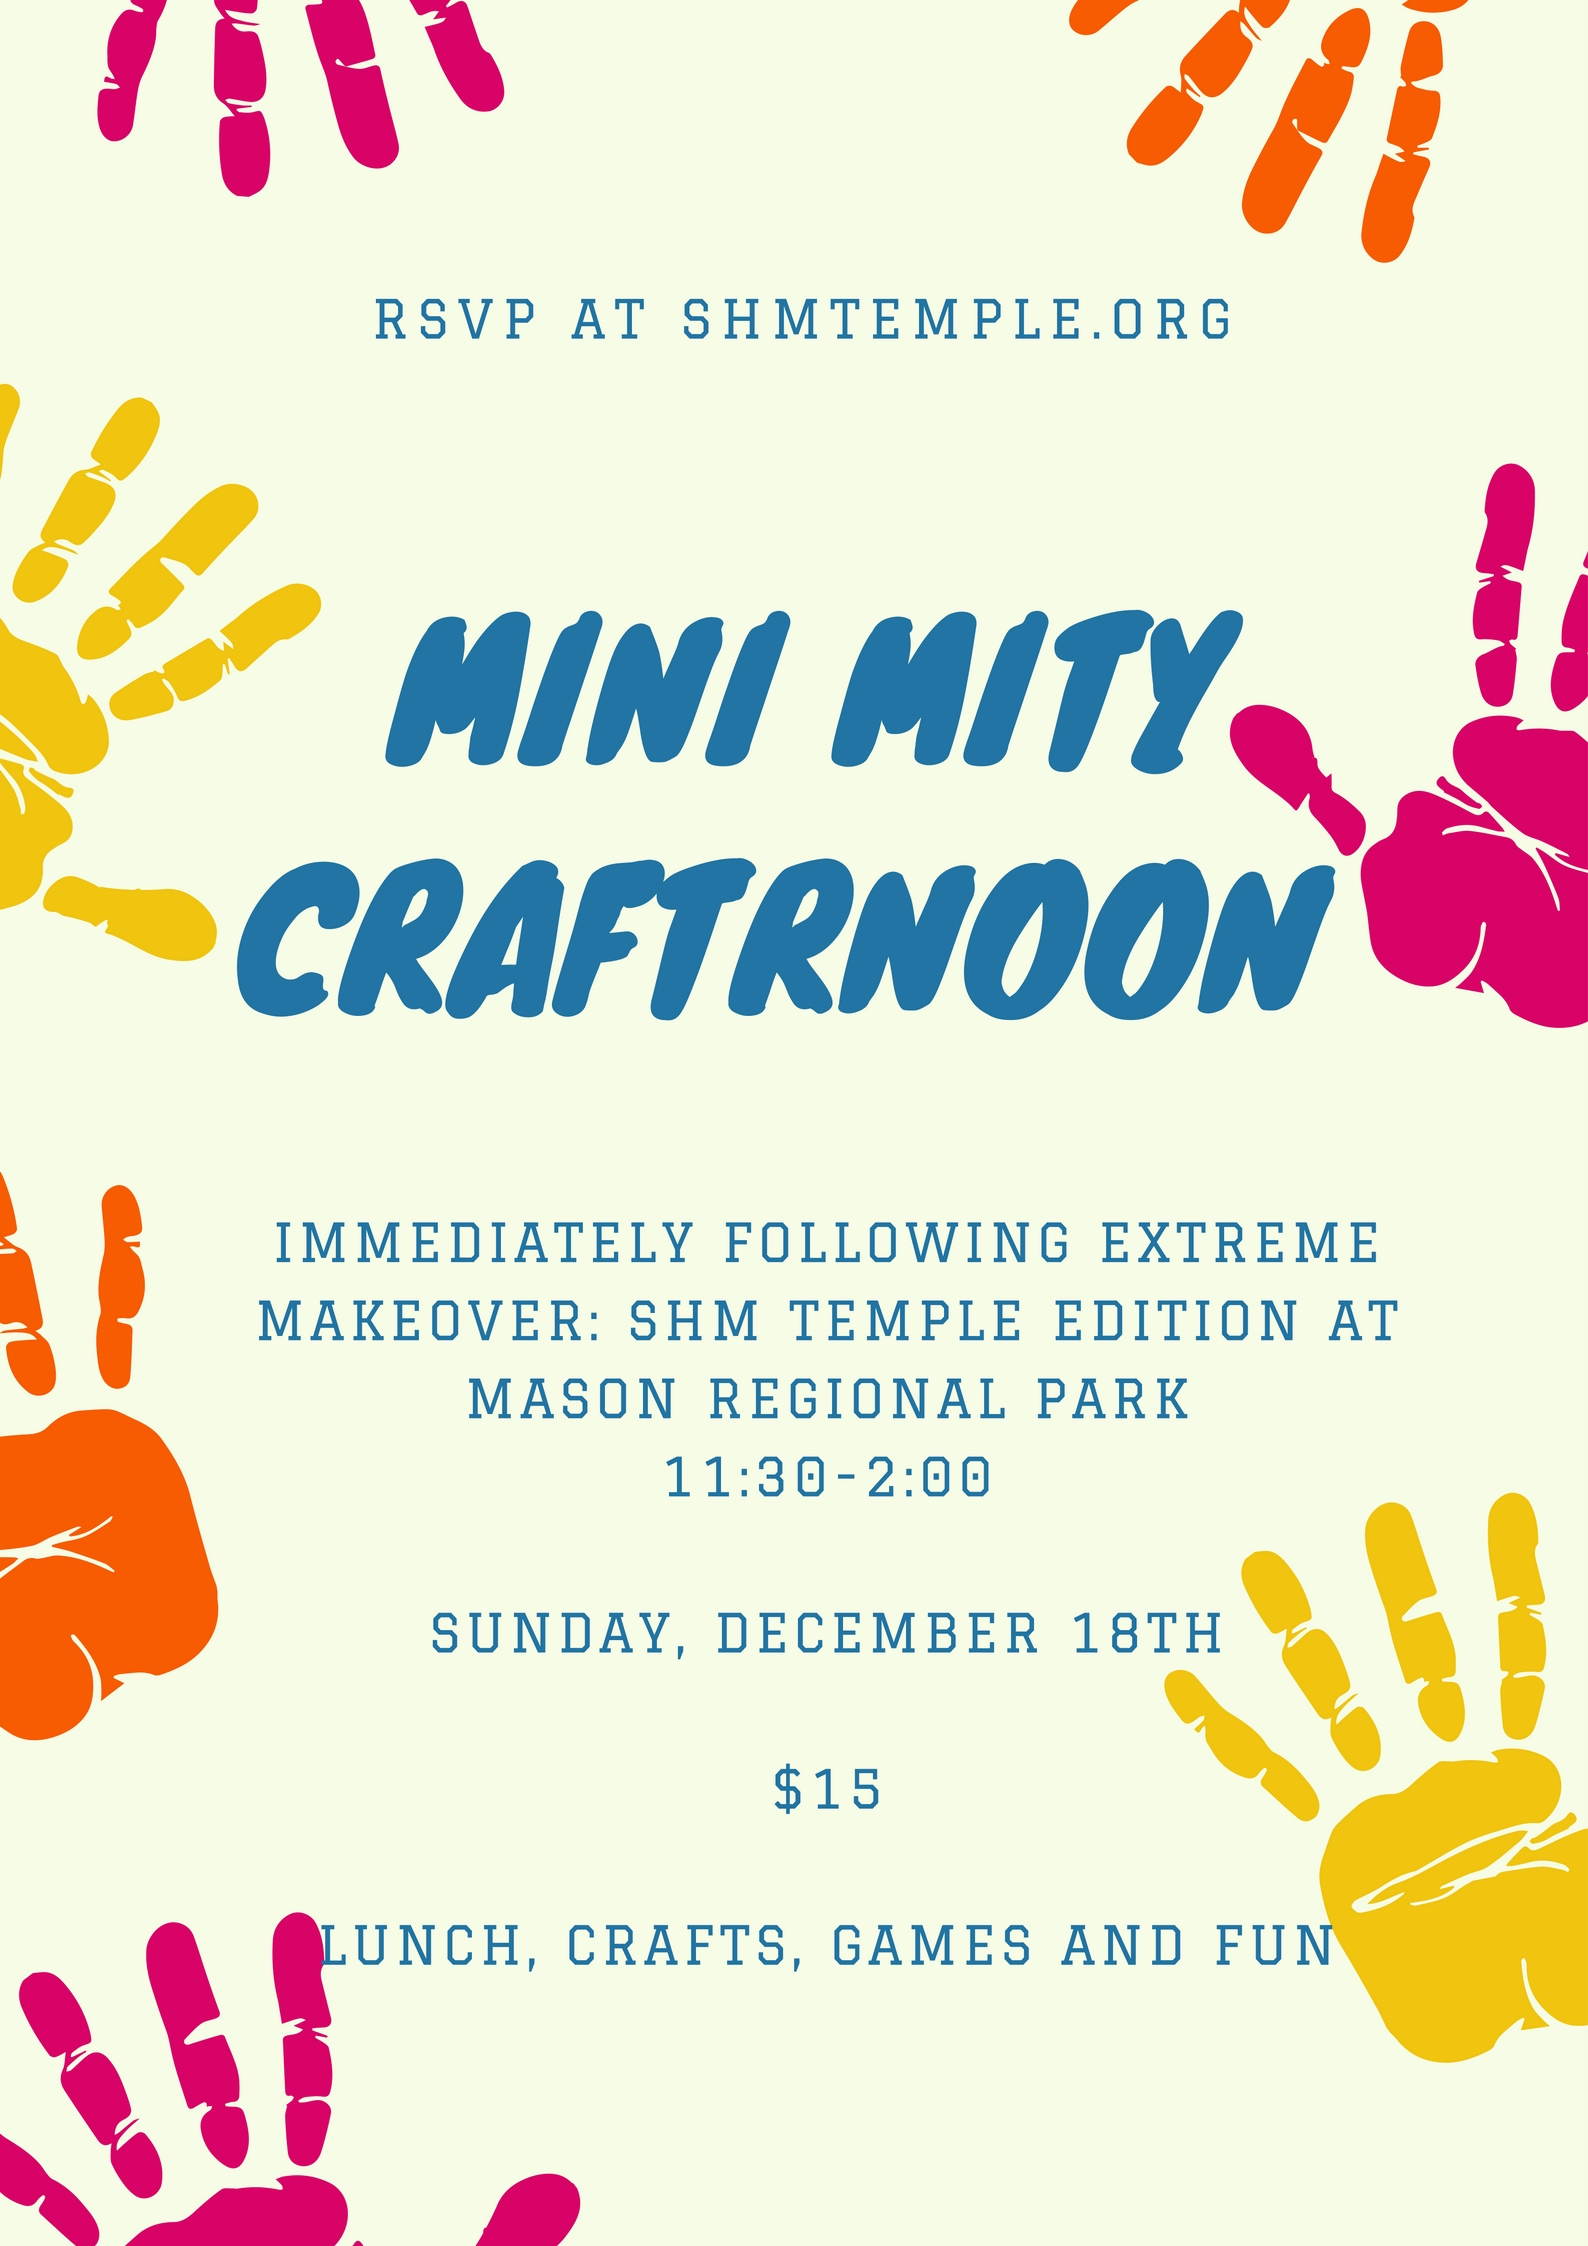 Mini Mity craftrnoon